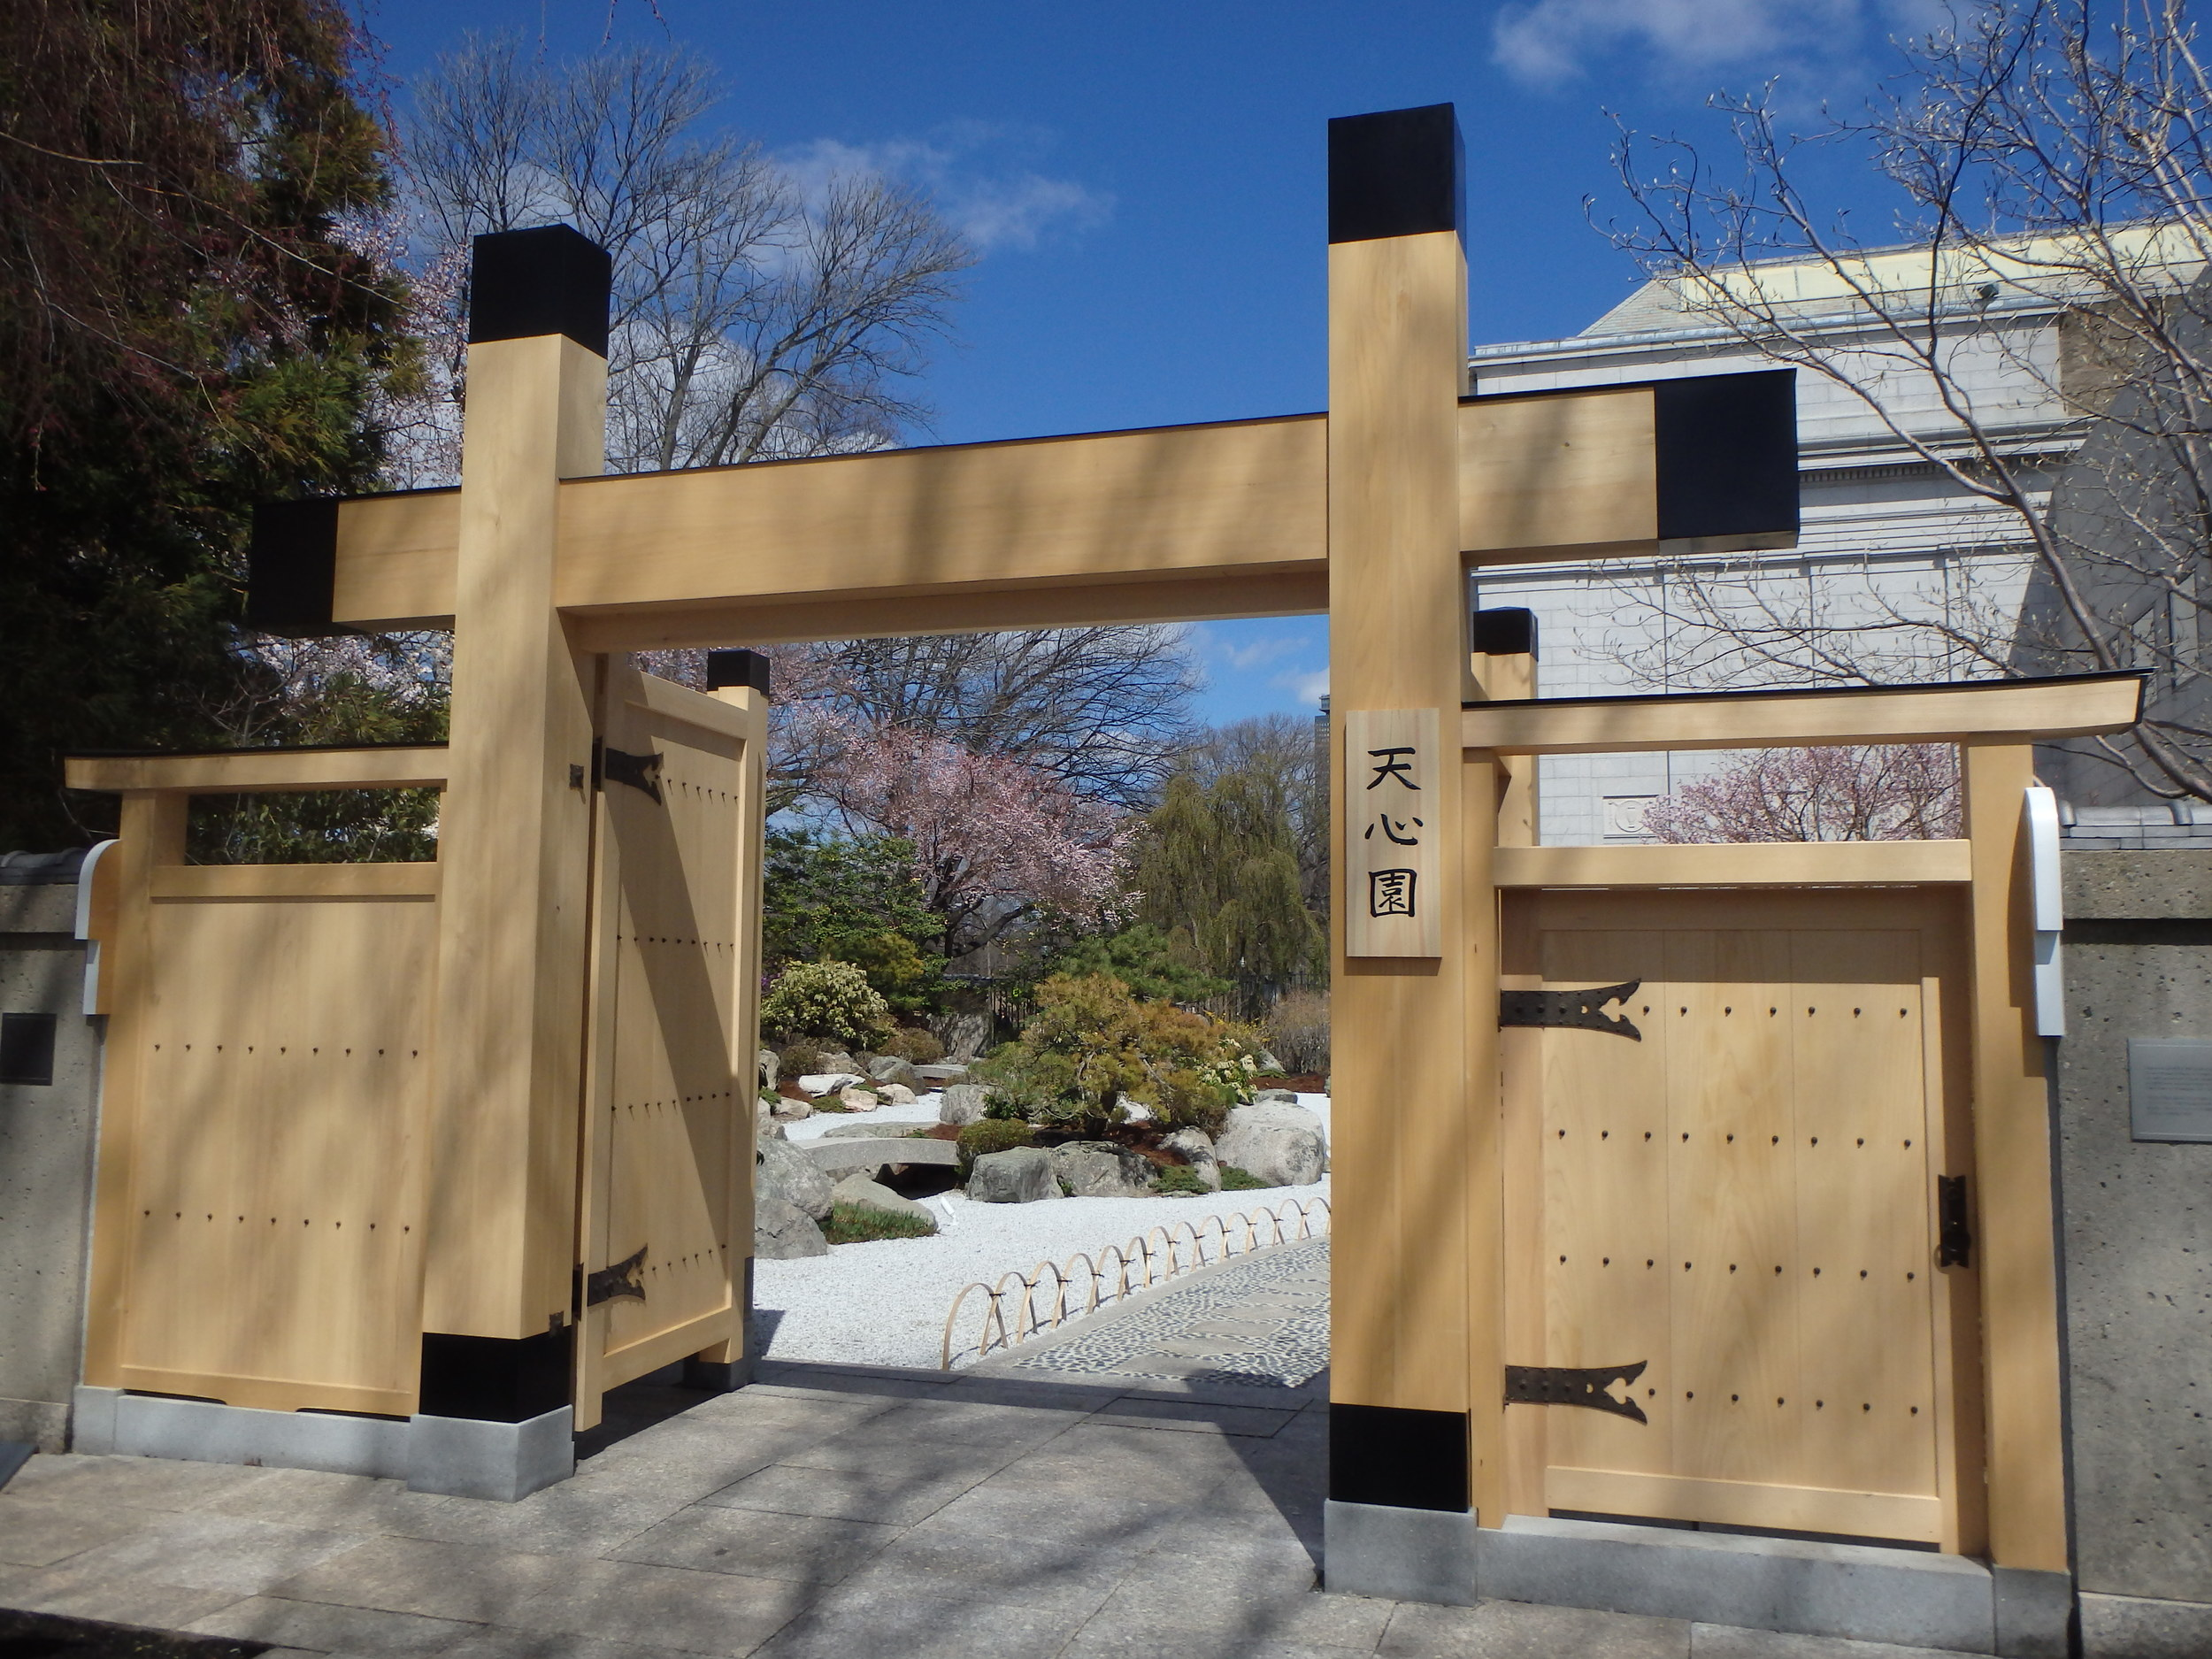 The gate on the day of the re-opening of the garden, April 24, 2015.